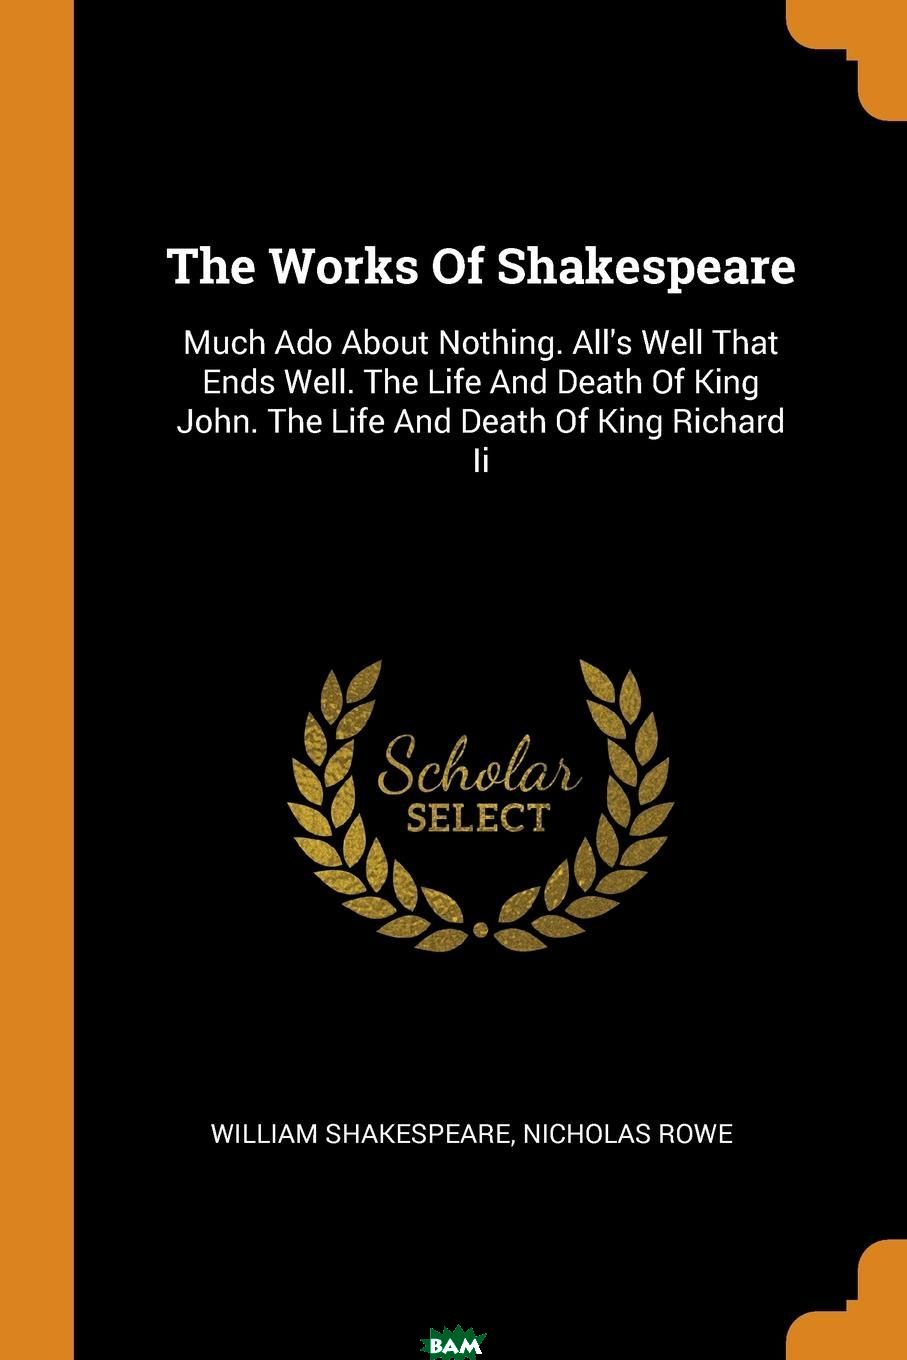 Купить The Works Of Shakespeare. Much Ado About Nothing. All.s Well That Ends Well. The Life And Death Of King John. The Life And Death Of King Richard Ii, William Shakespeare, Nicholas Rowe, 9780353201637